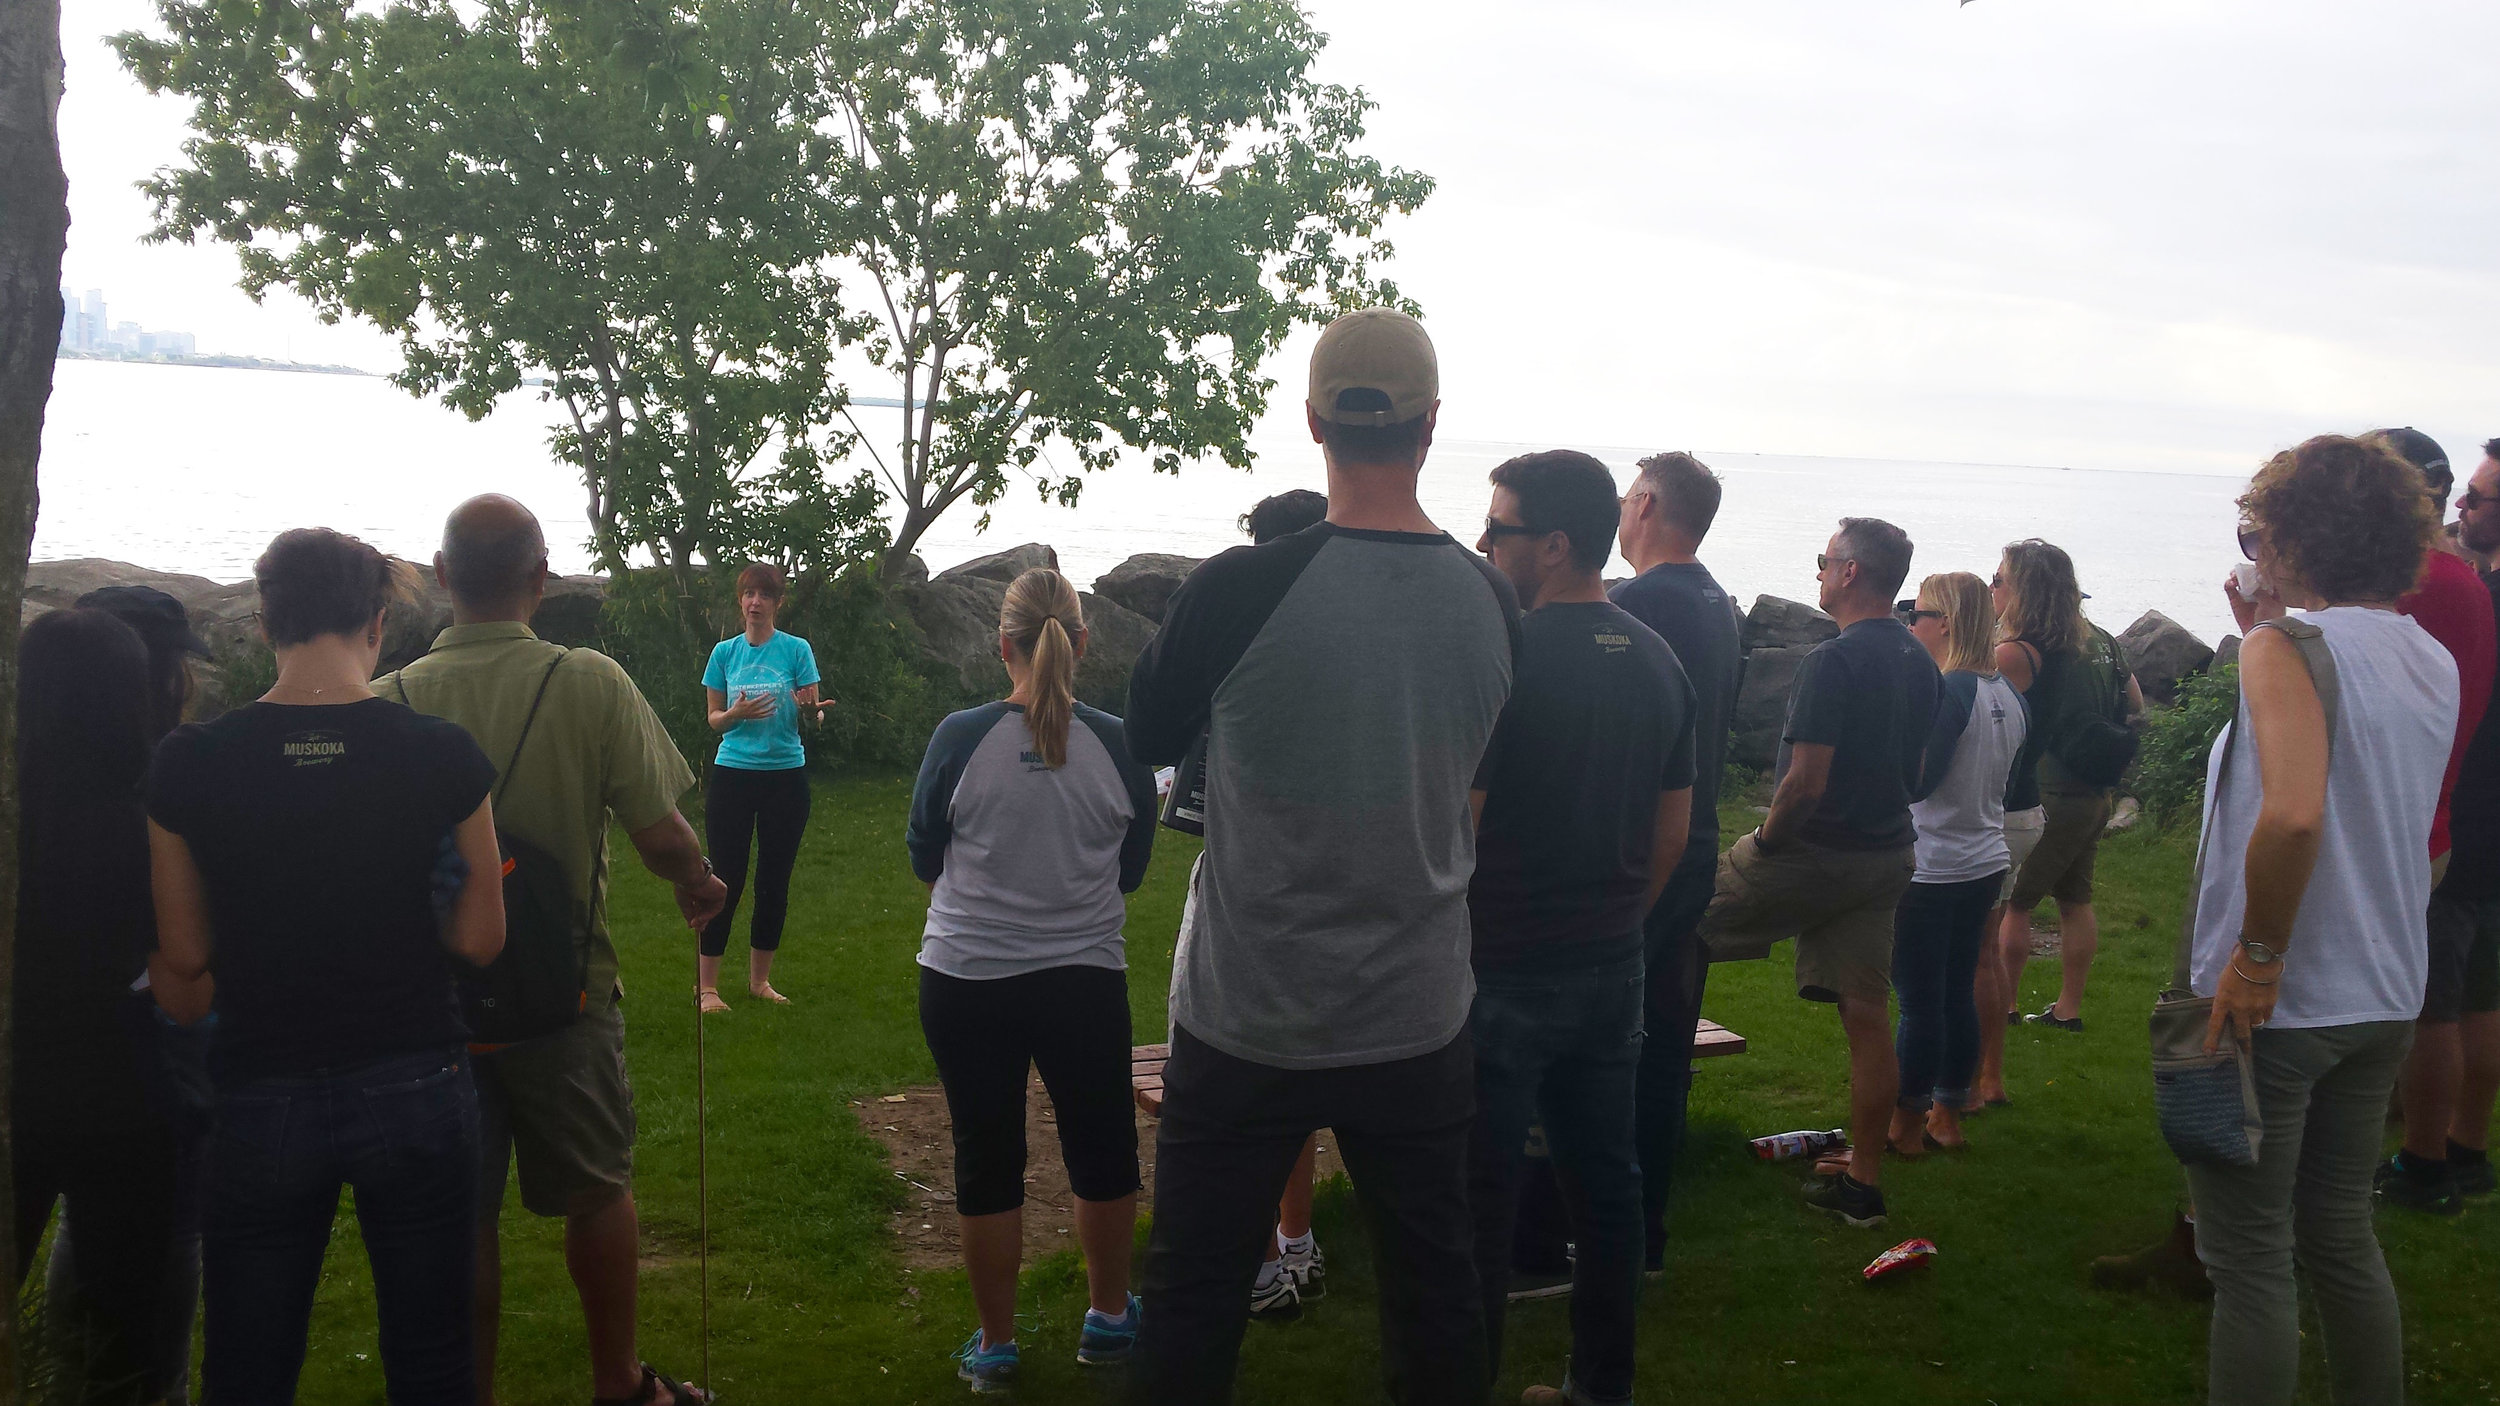 Krystyn Tully speaking prior to a shoreline cleanup and water sampling excursion at Humber Bay Park West.